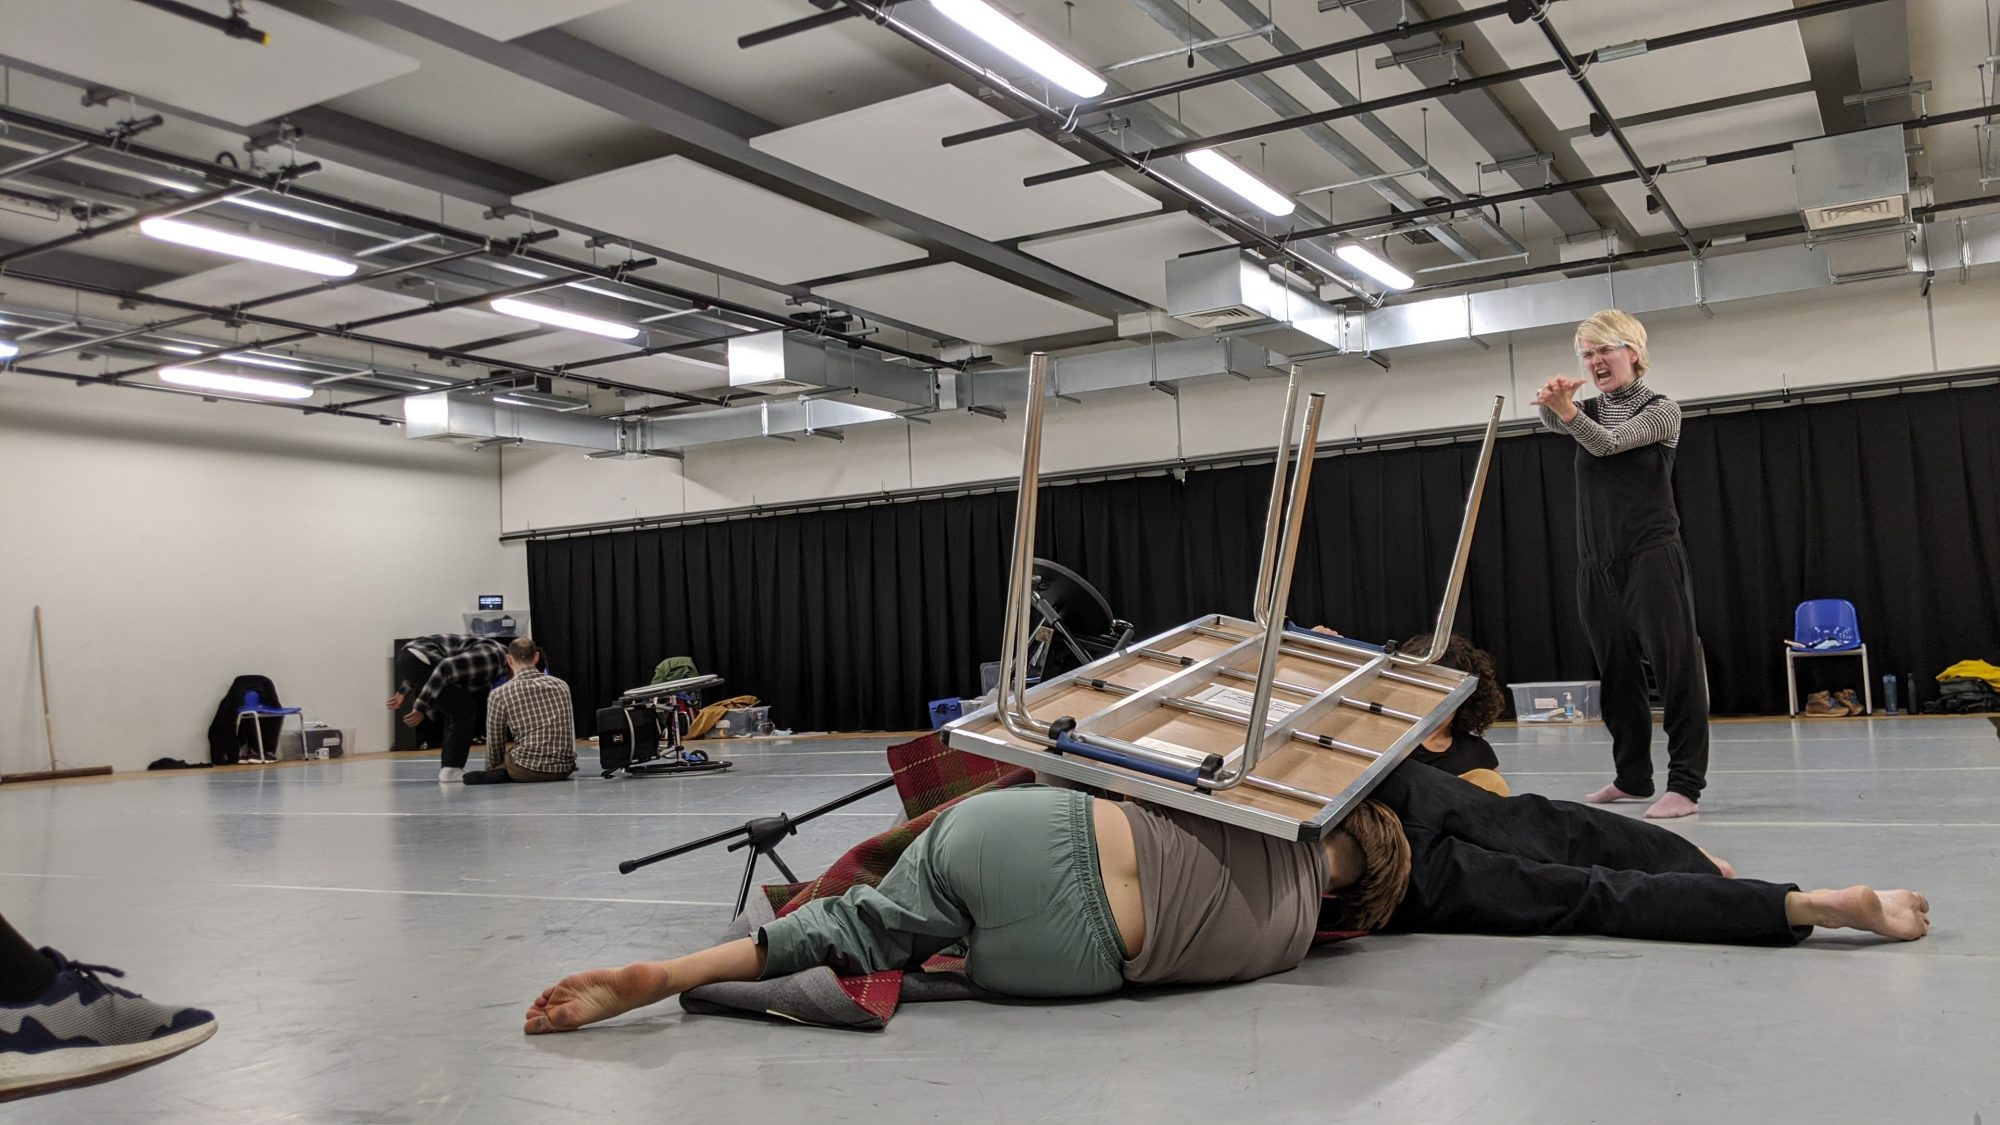 Dancers Under a Table Last Shelter Rehearsal